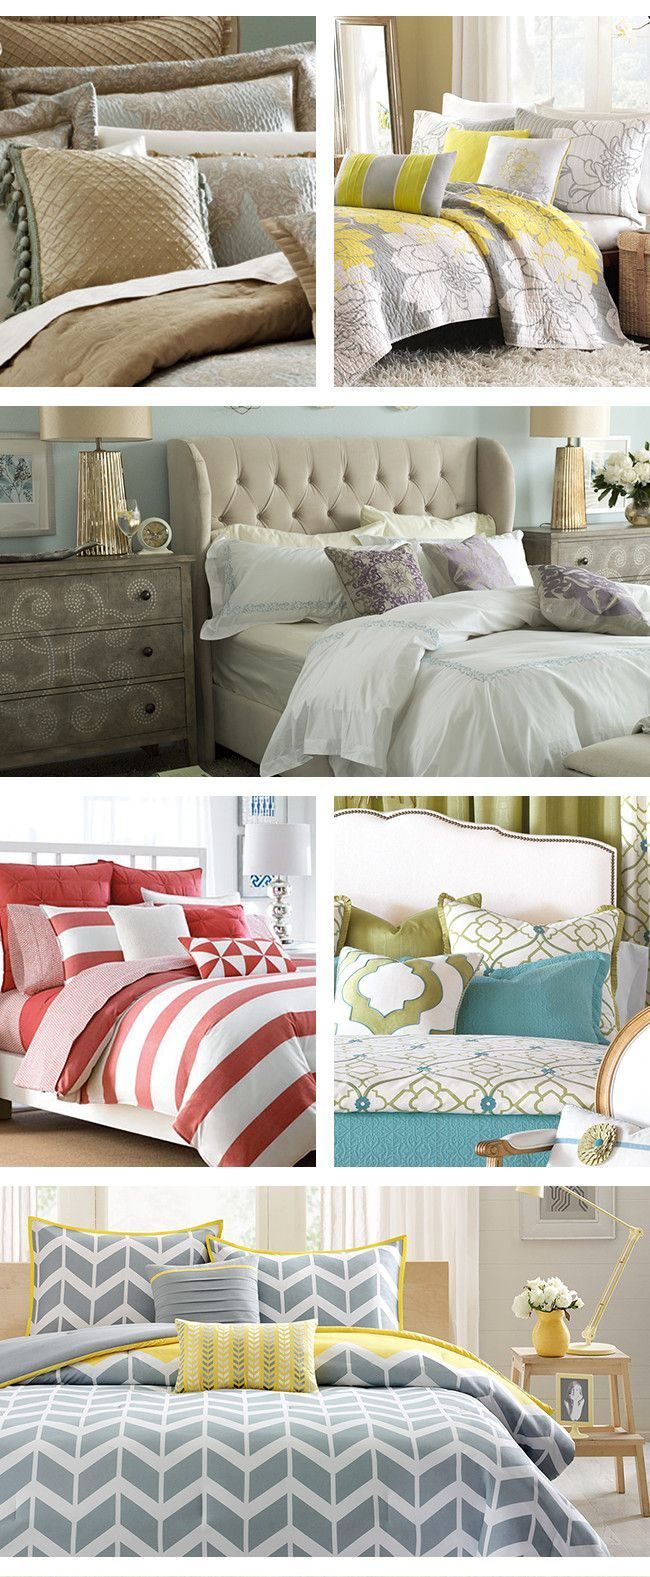 From colorful comforters to stylish furniture weu0027ll